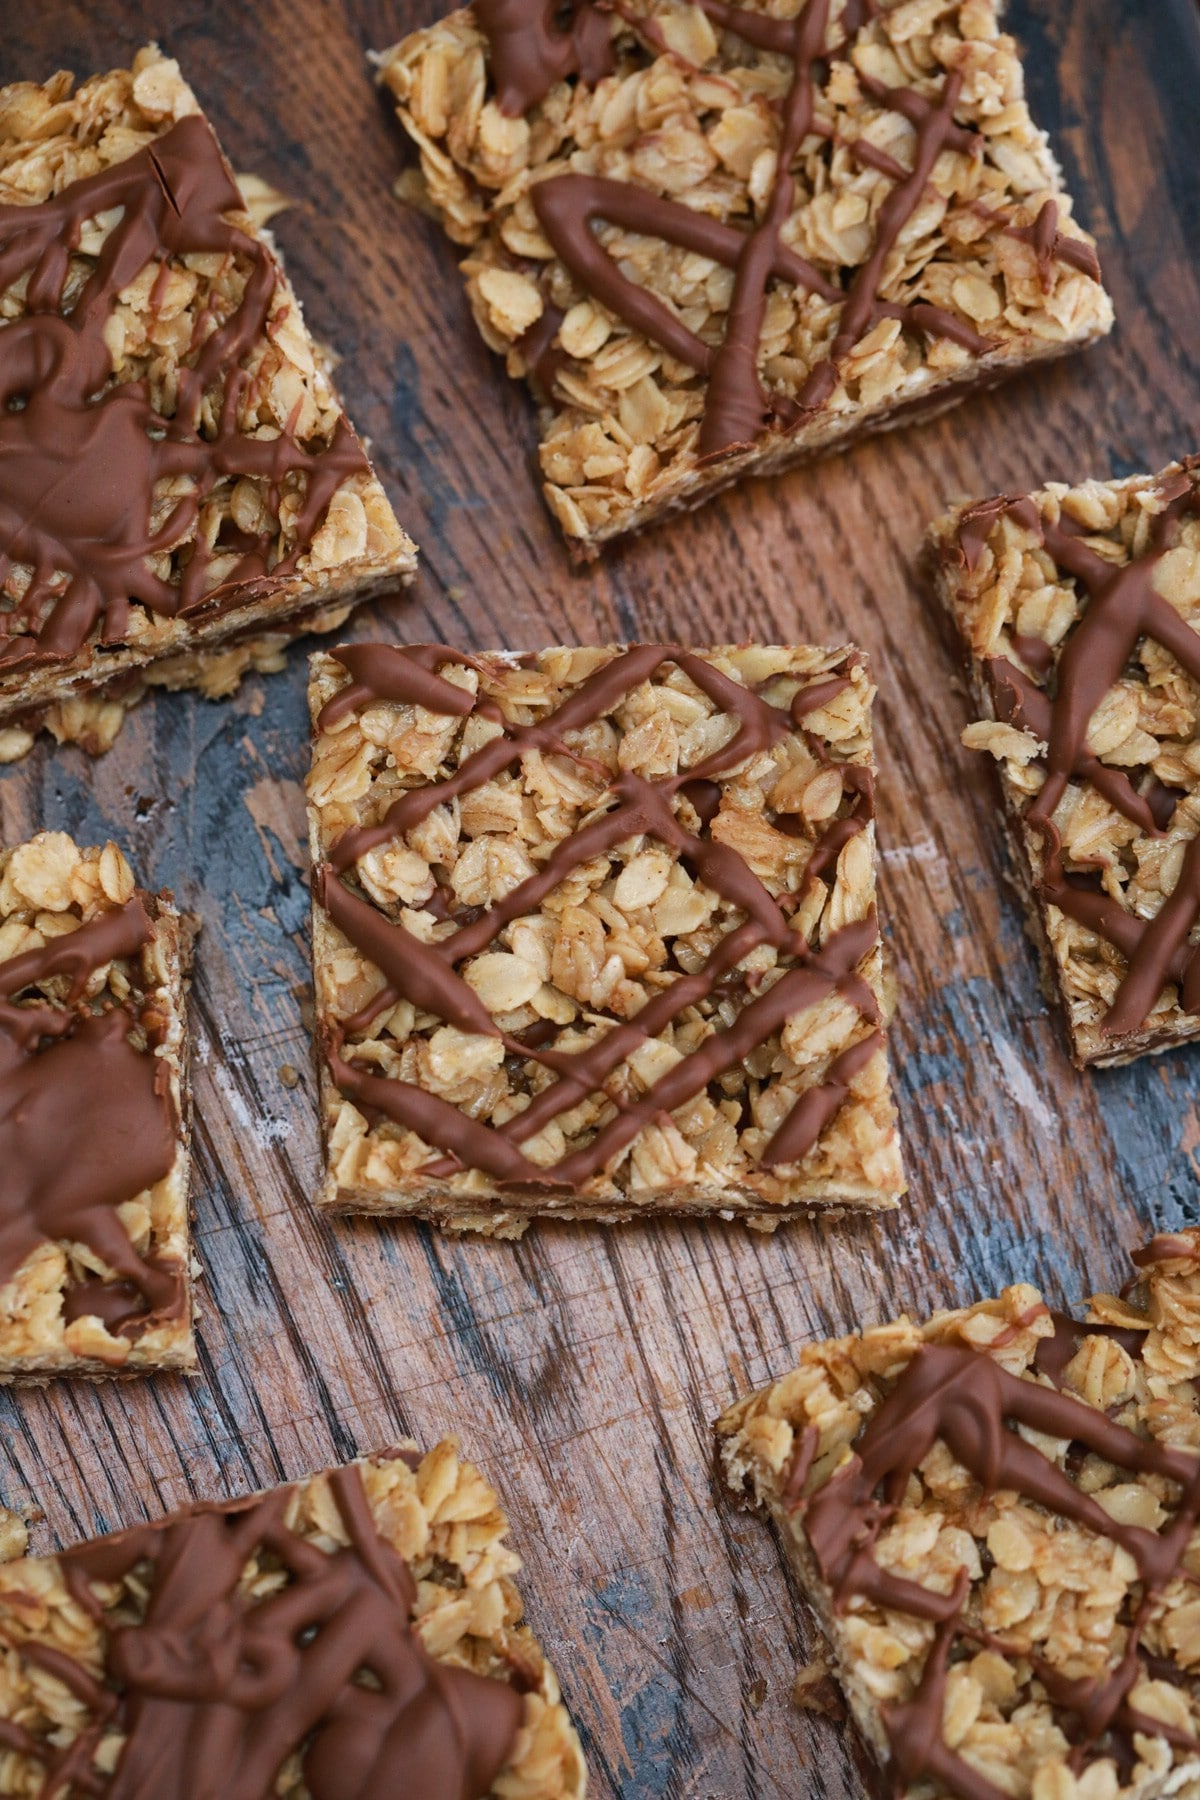 Oatmeal bars with chocolate peanut butter drizzle on wooden table